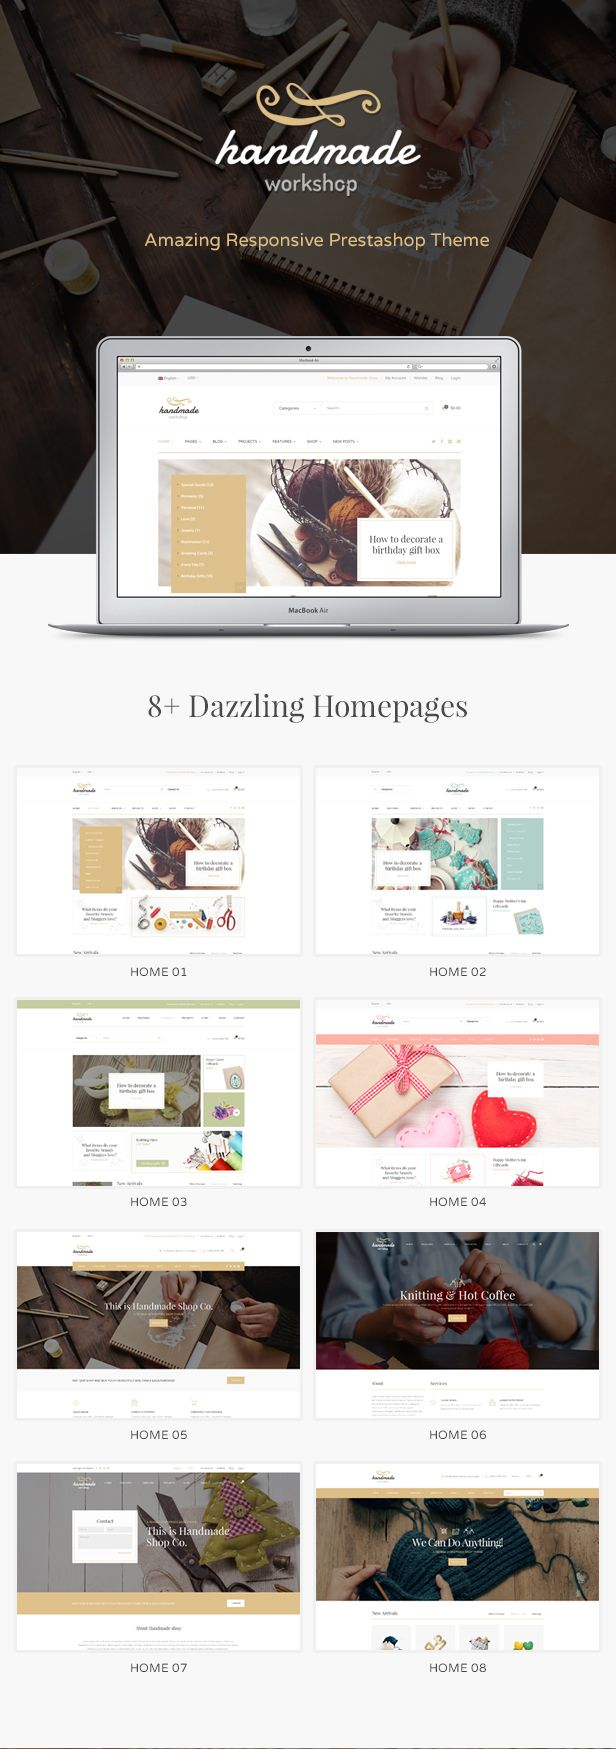 Handmade - Amazing Responsive Prestashop Theme Template #eCommerce Download here: http://themeforest.net/item/handmade-amazing-responsive-prestashop-theme/15568960?s_rank=1&ref=yinkira